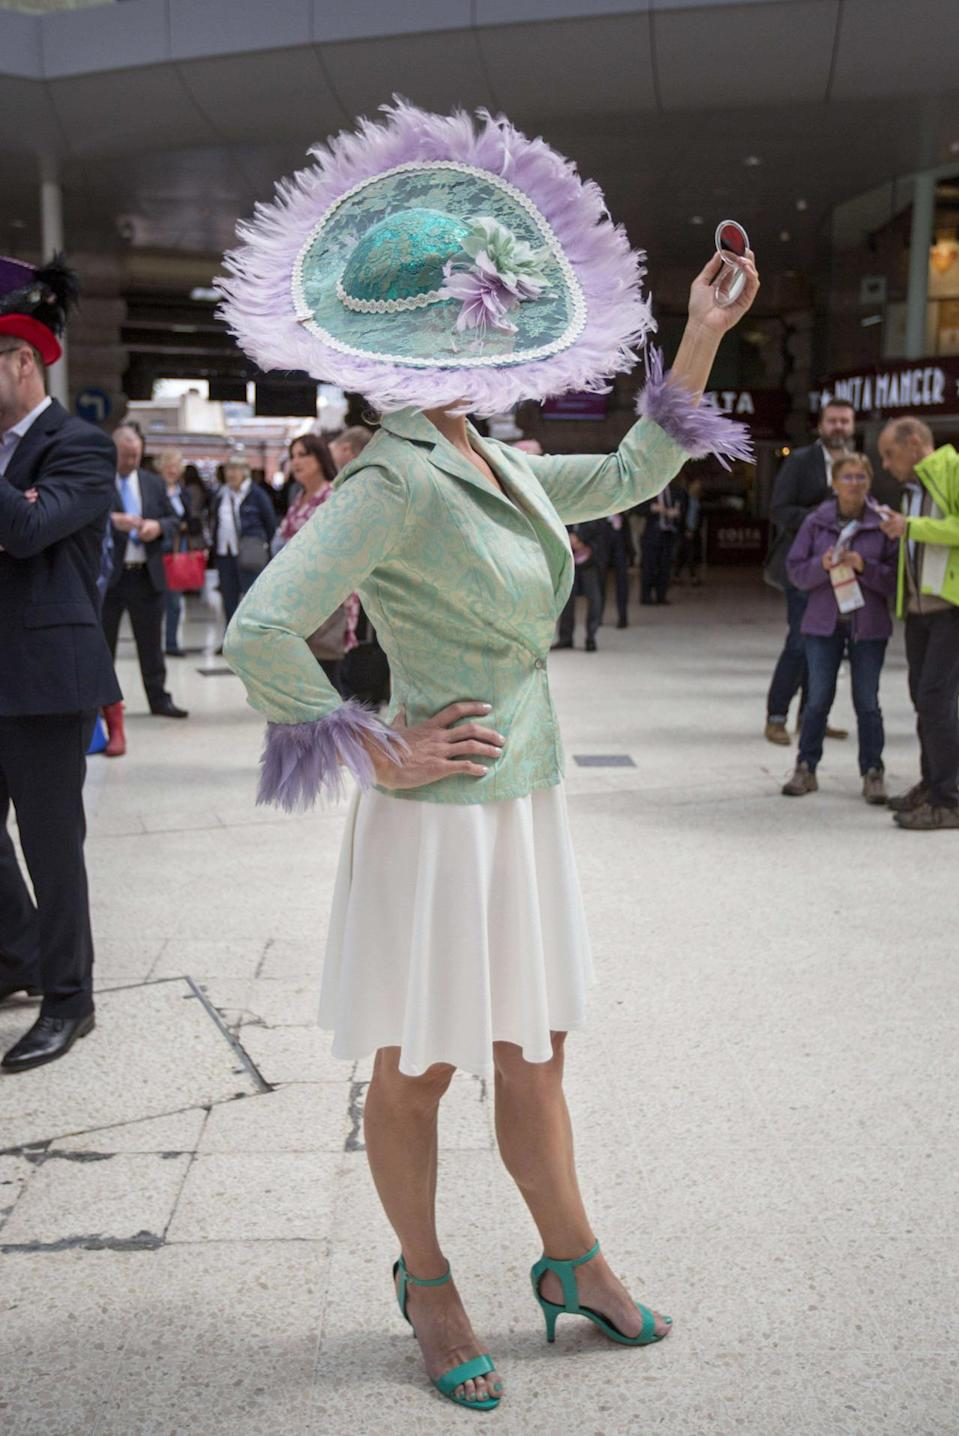 No need to wait for the racecourse to strike a pose. [Photo: Rex]